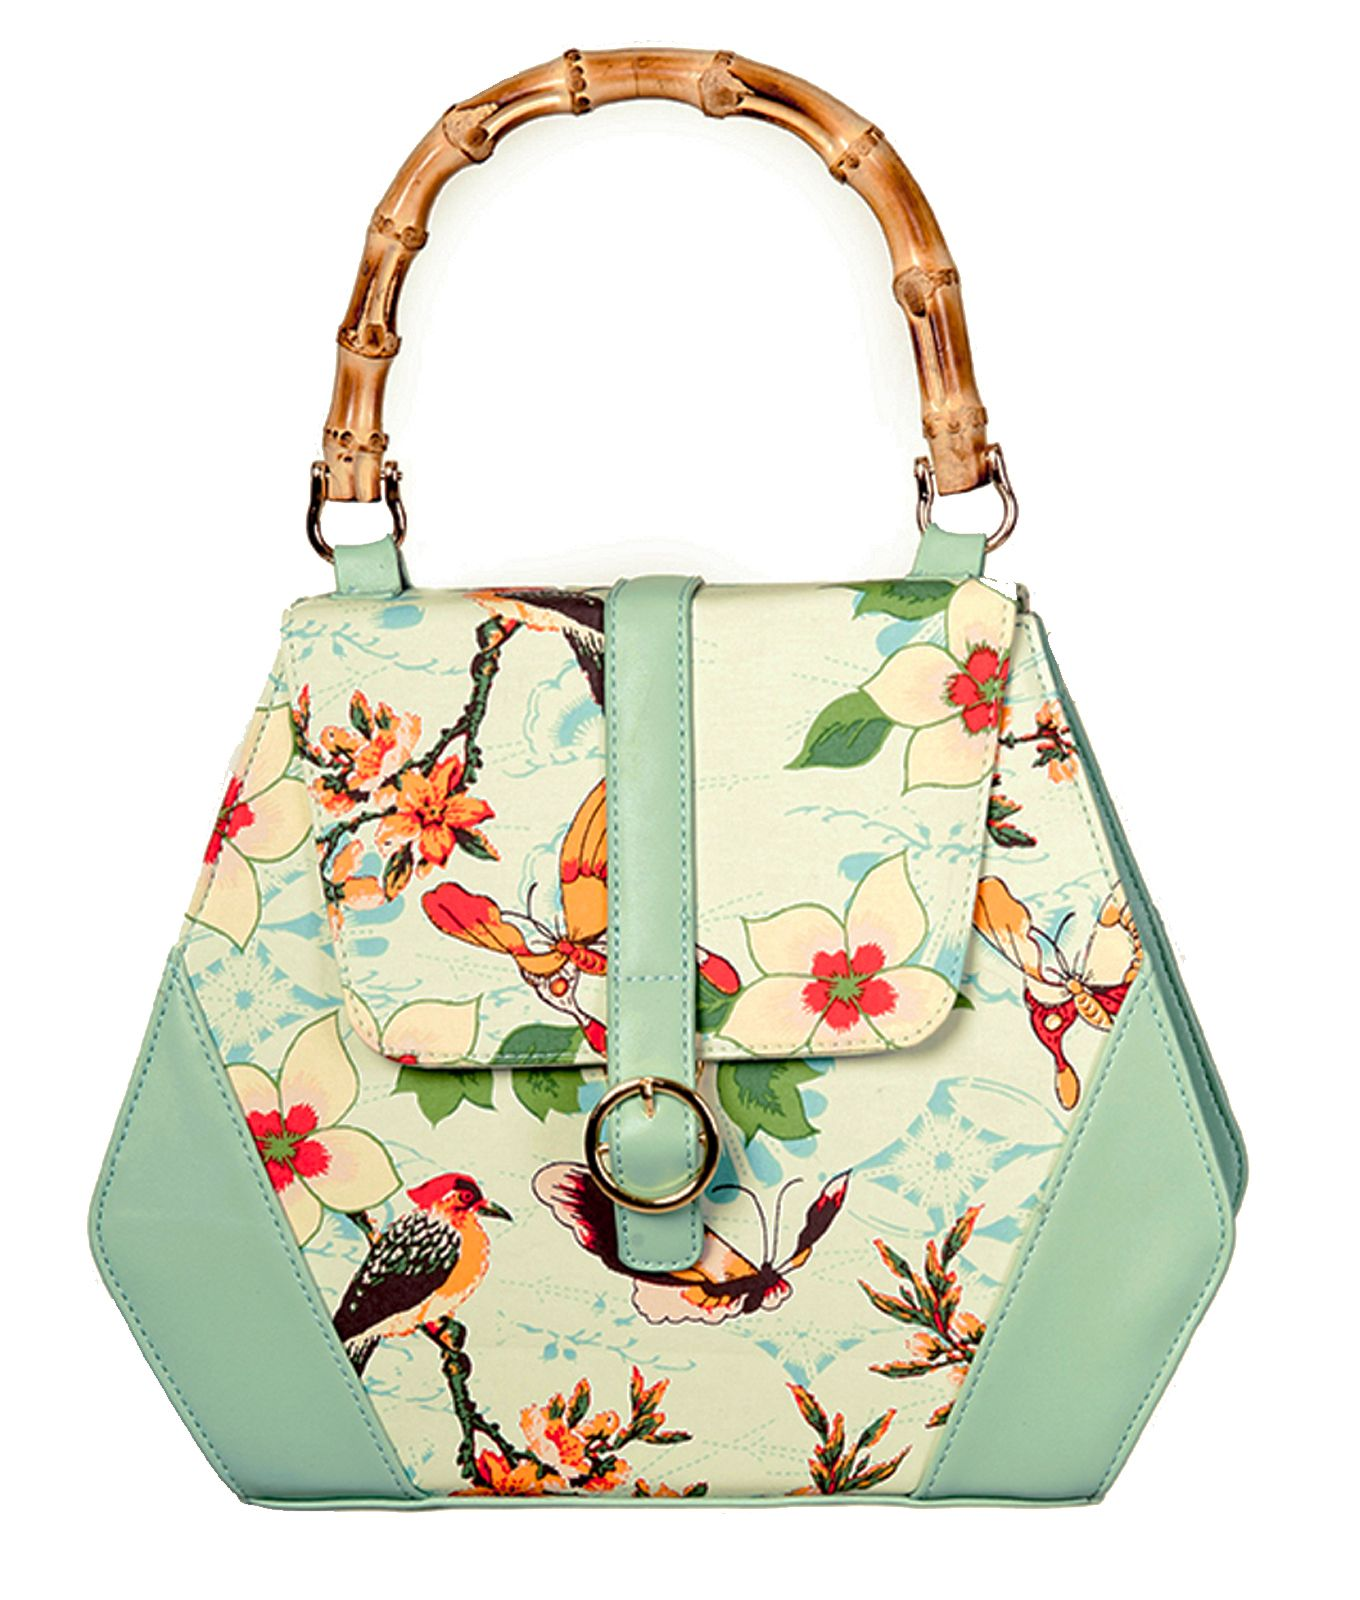 Beautiful 50s Vintage Style Handbag Will Really Compliment Any Outfit A Simply Gorgeous Yet Practical